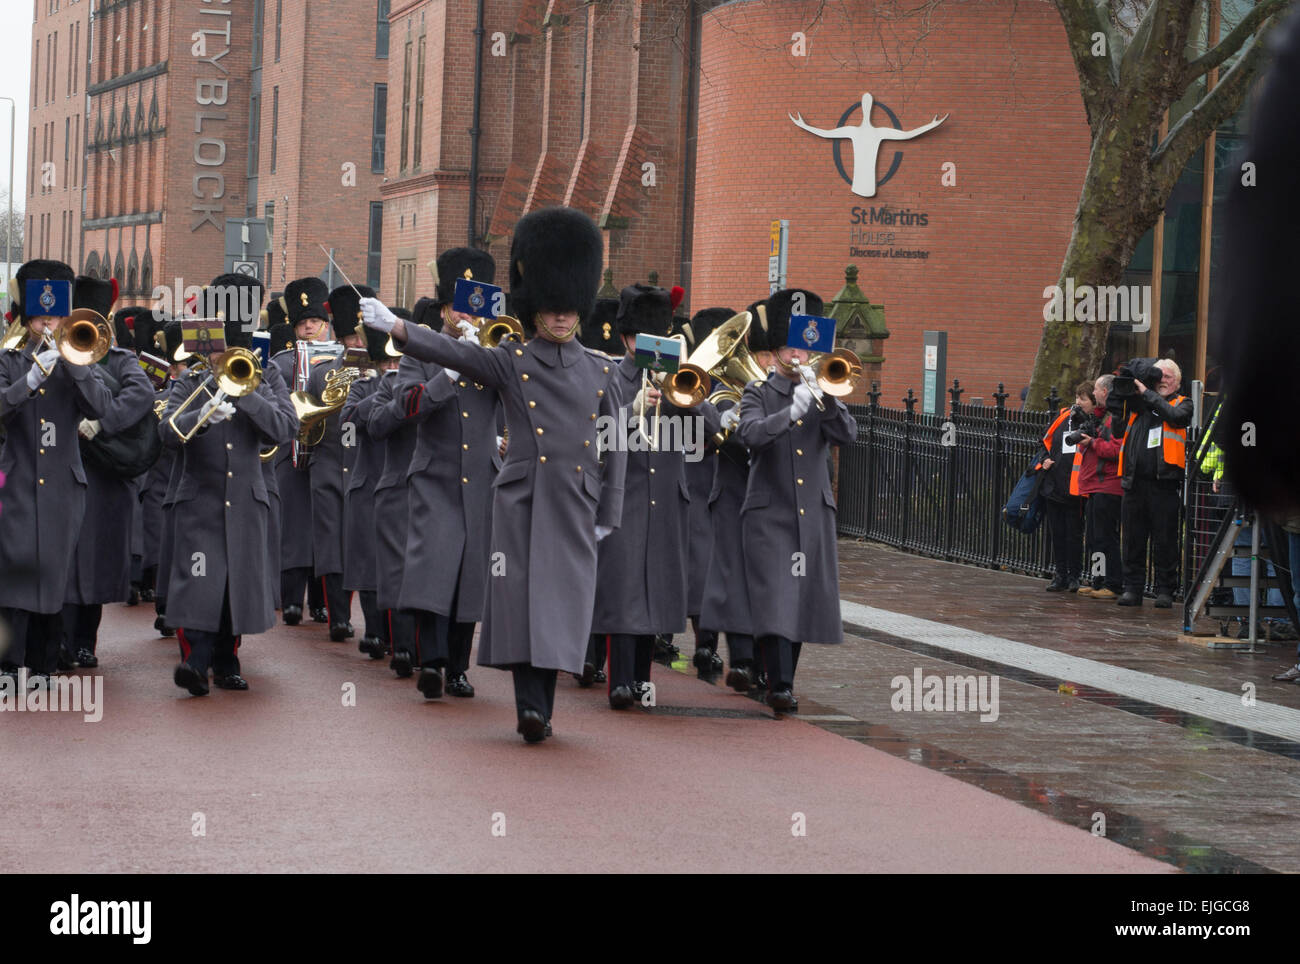 Leicester, UK. 26th March 2015. The Queen's Division Band marches into the forecourt  as celebrities enter the Leicester - Stock Image